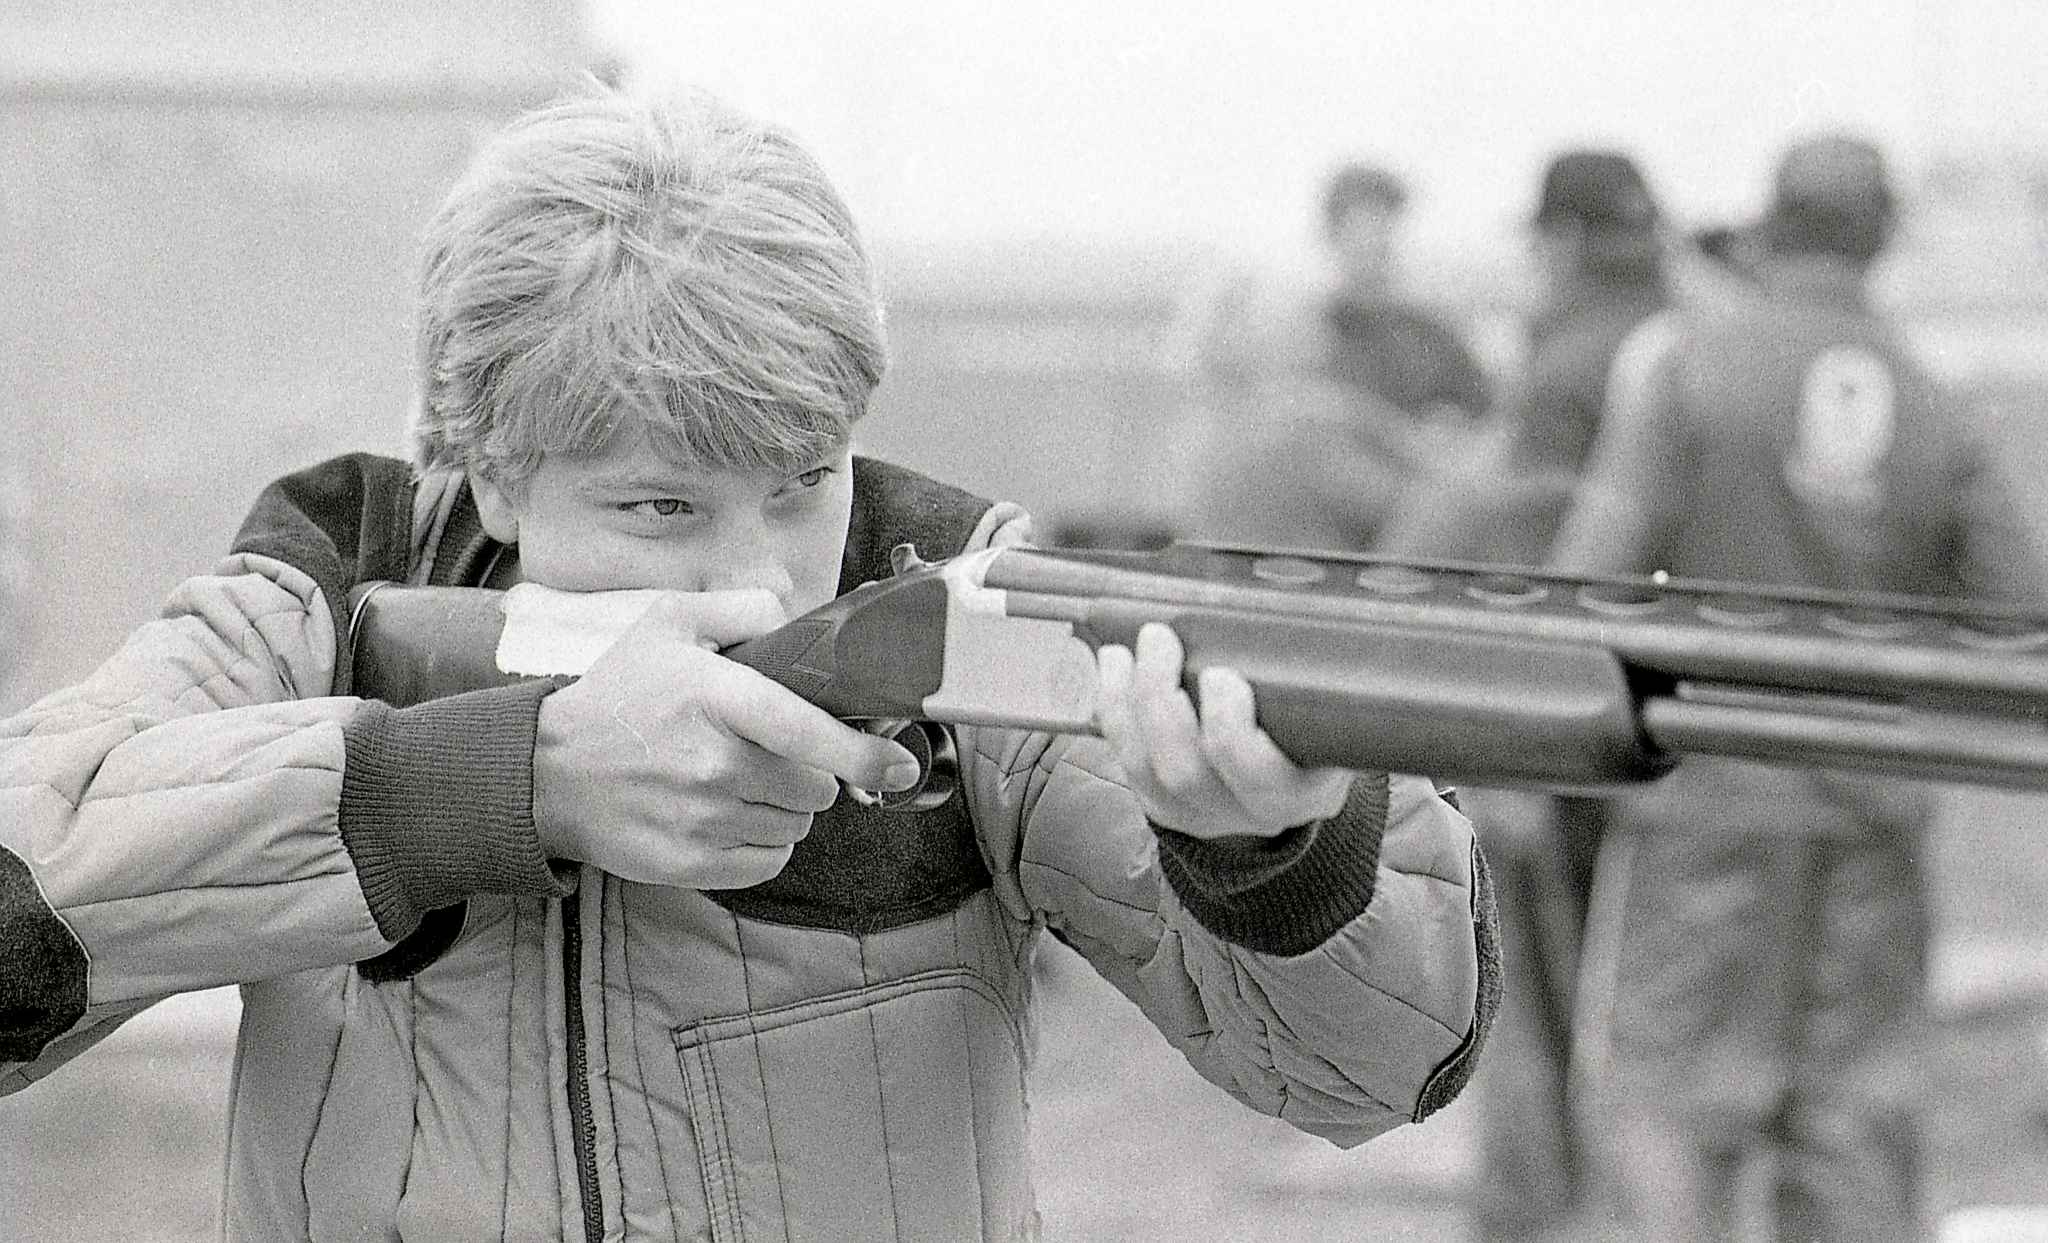 A 14-year-old Curtis Wennberg takes aim during the Manitoba International Provincial Trap Shooting championships in 1985.